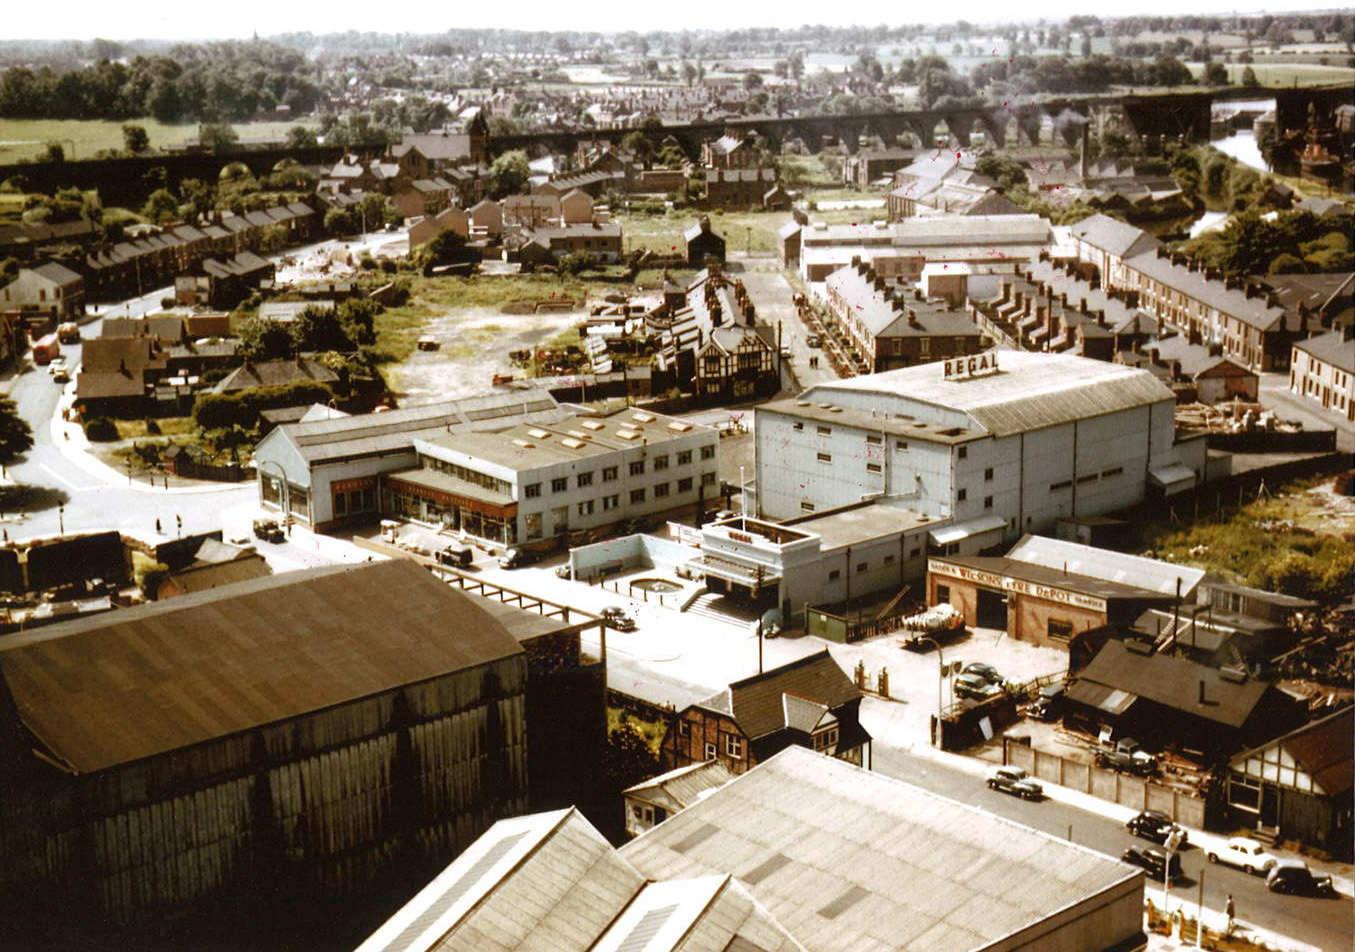 Pictures of old Northwich from the skies